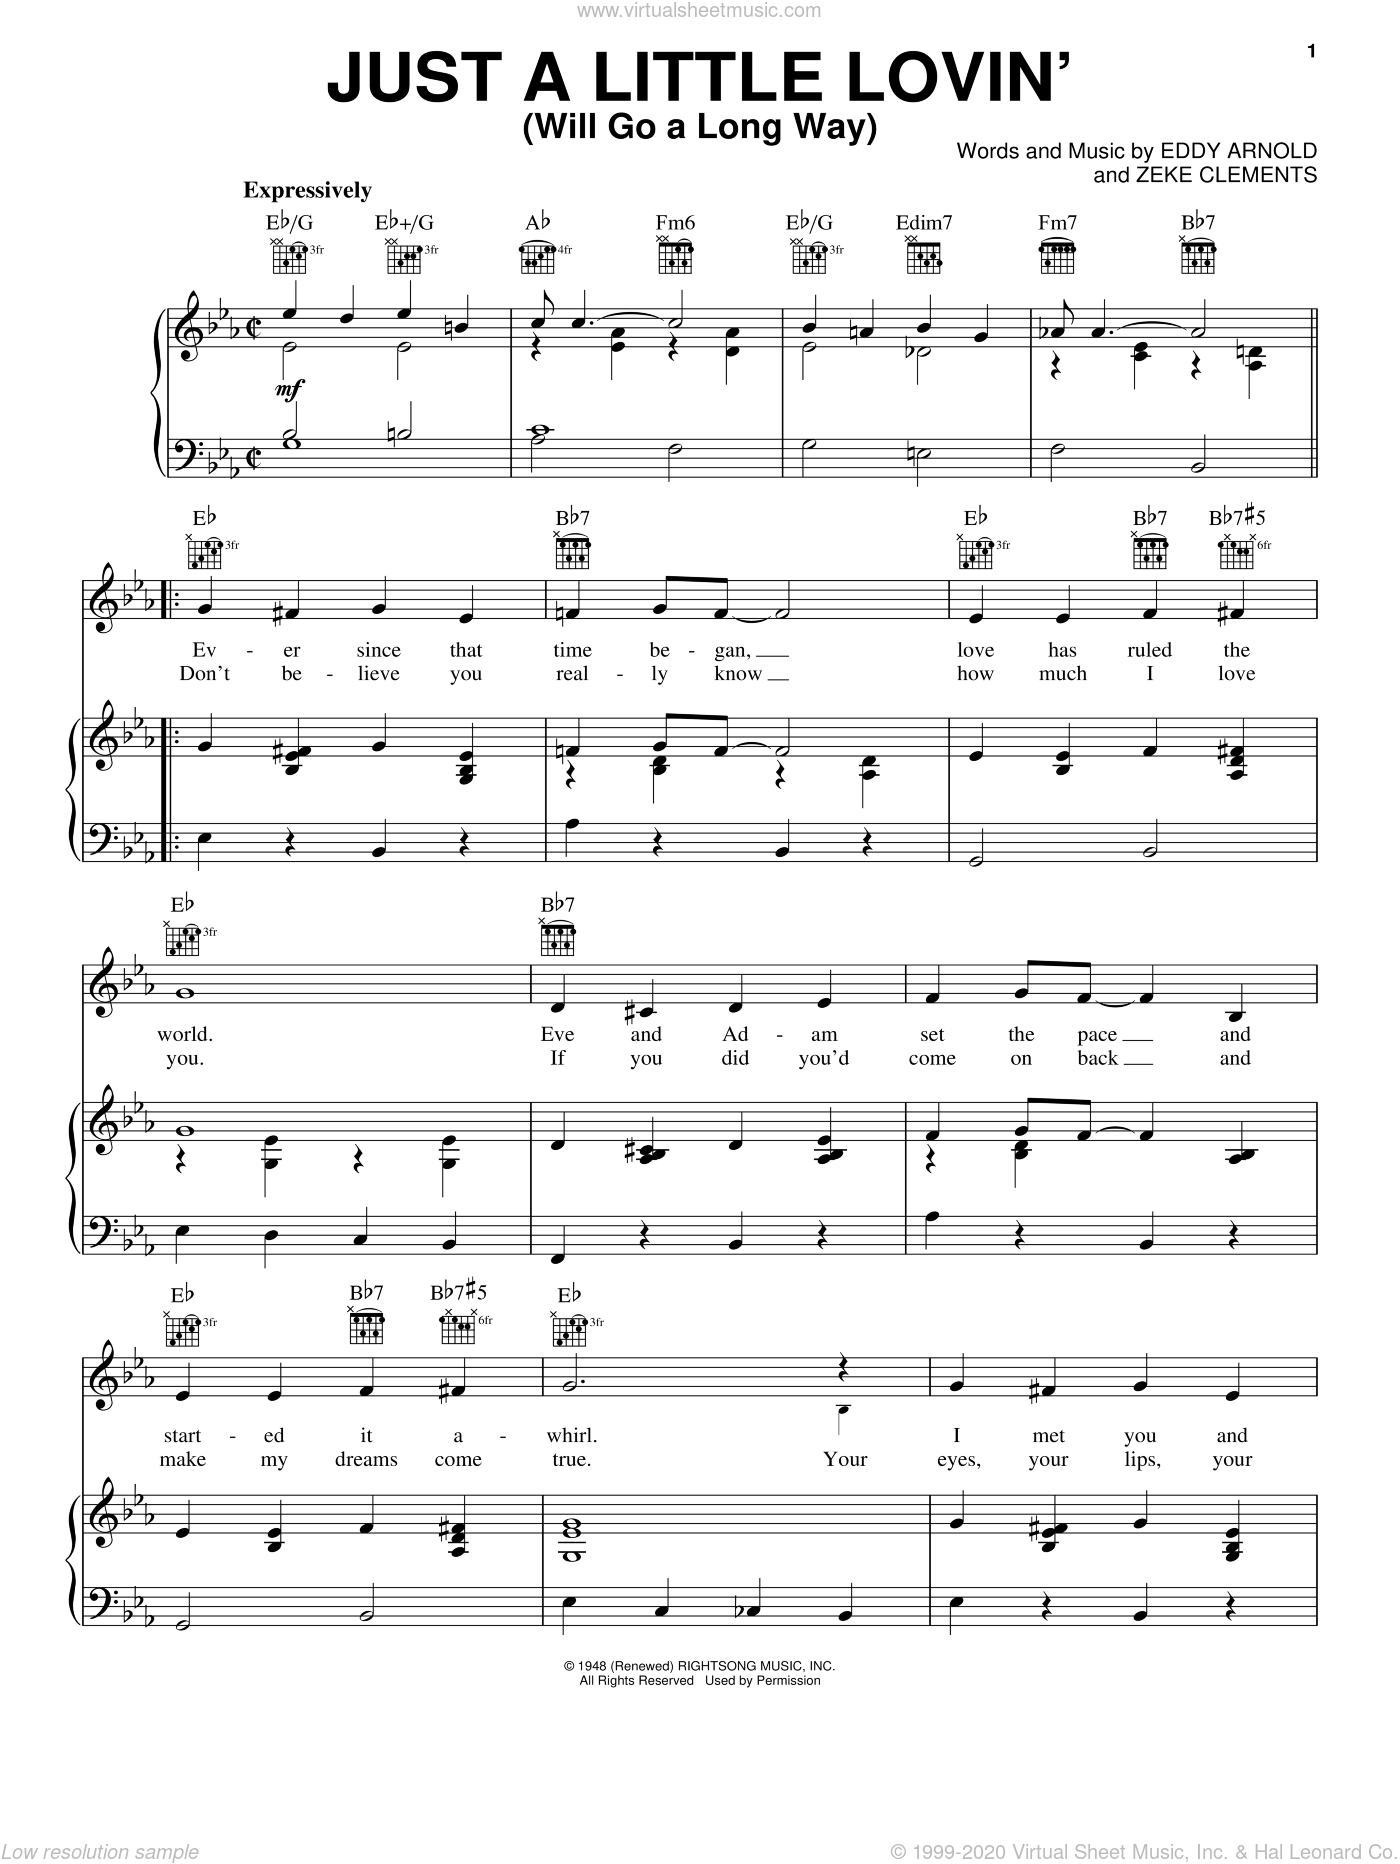 Just A Little Lovin' (Will Go A Long Way) sheet music for voice, piano or guitar by Eddy Arnold